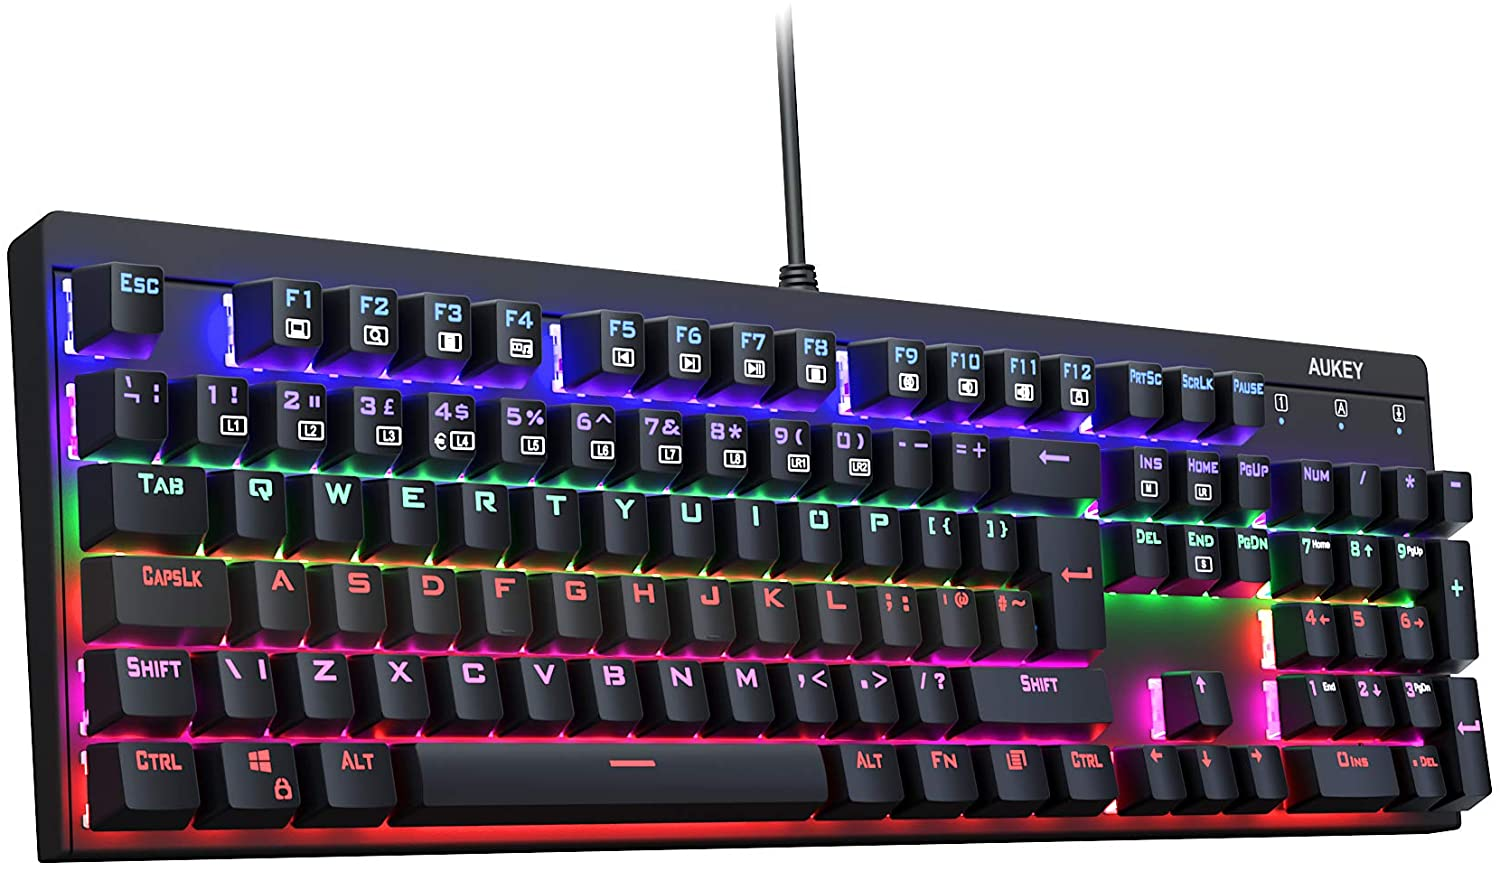 AUKEY Mechanical LED Backlit Gaming Keyboard Review